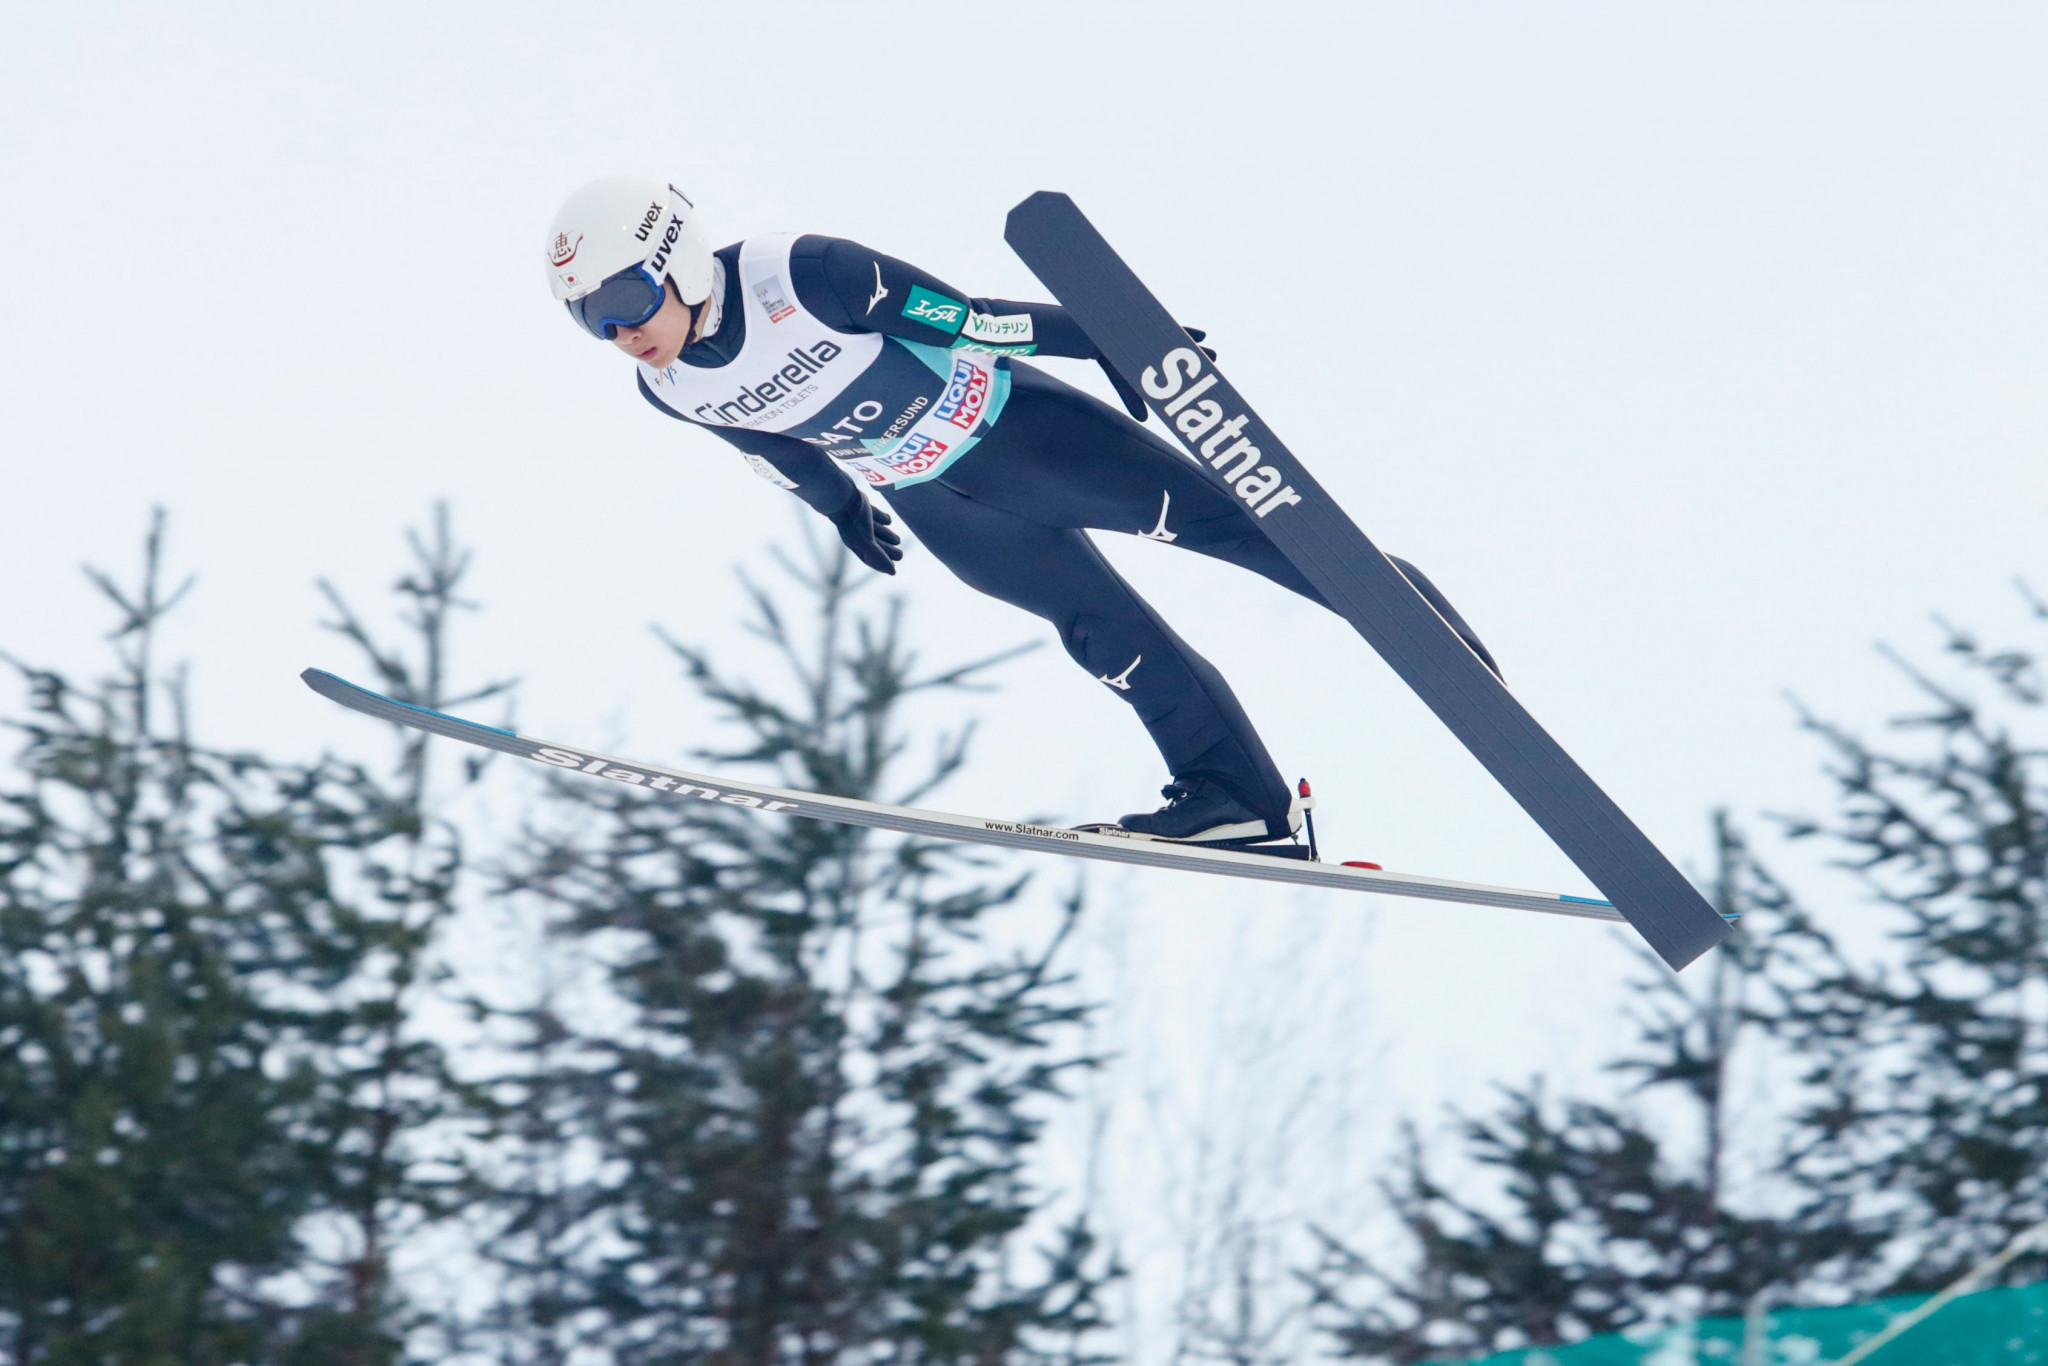 Yukiya Sato of Japan claimed victory at the FIS Men's Ski Jumping World Cup in Nizhny Tagil ©Getty Images